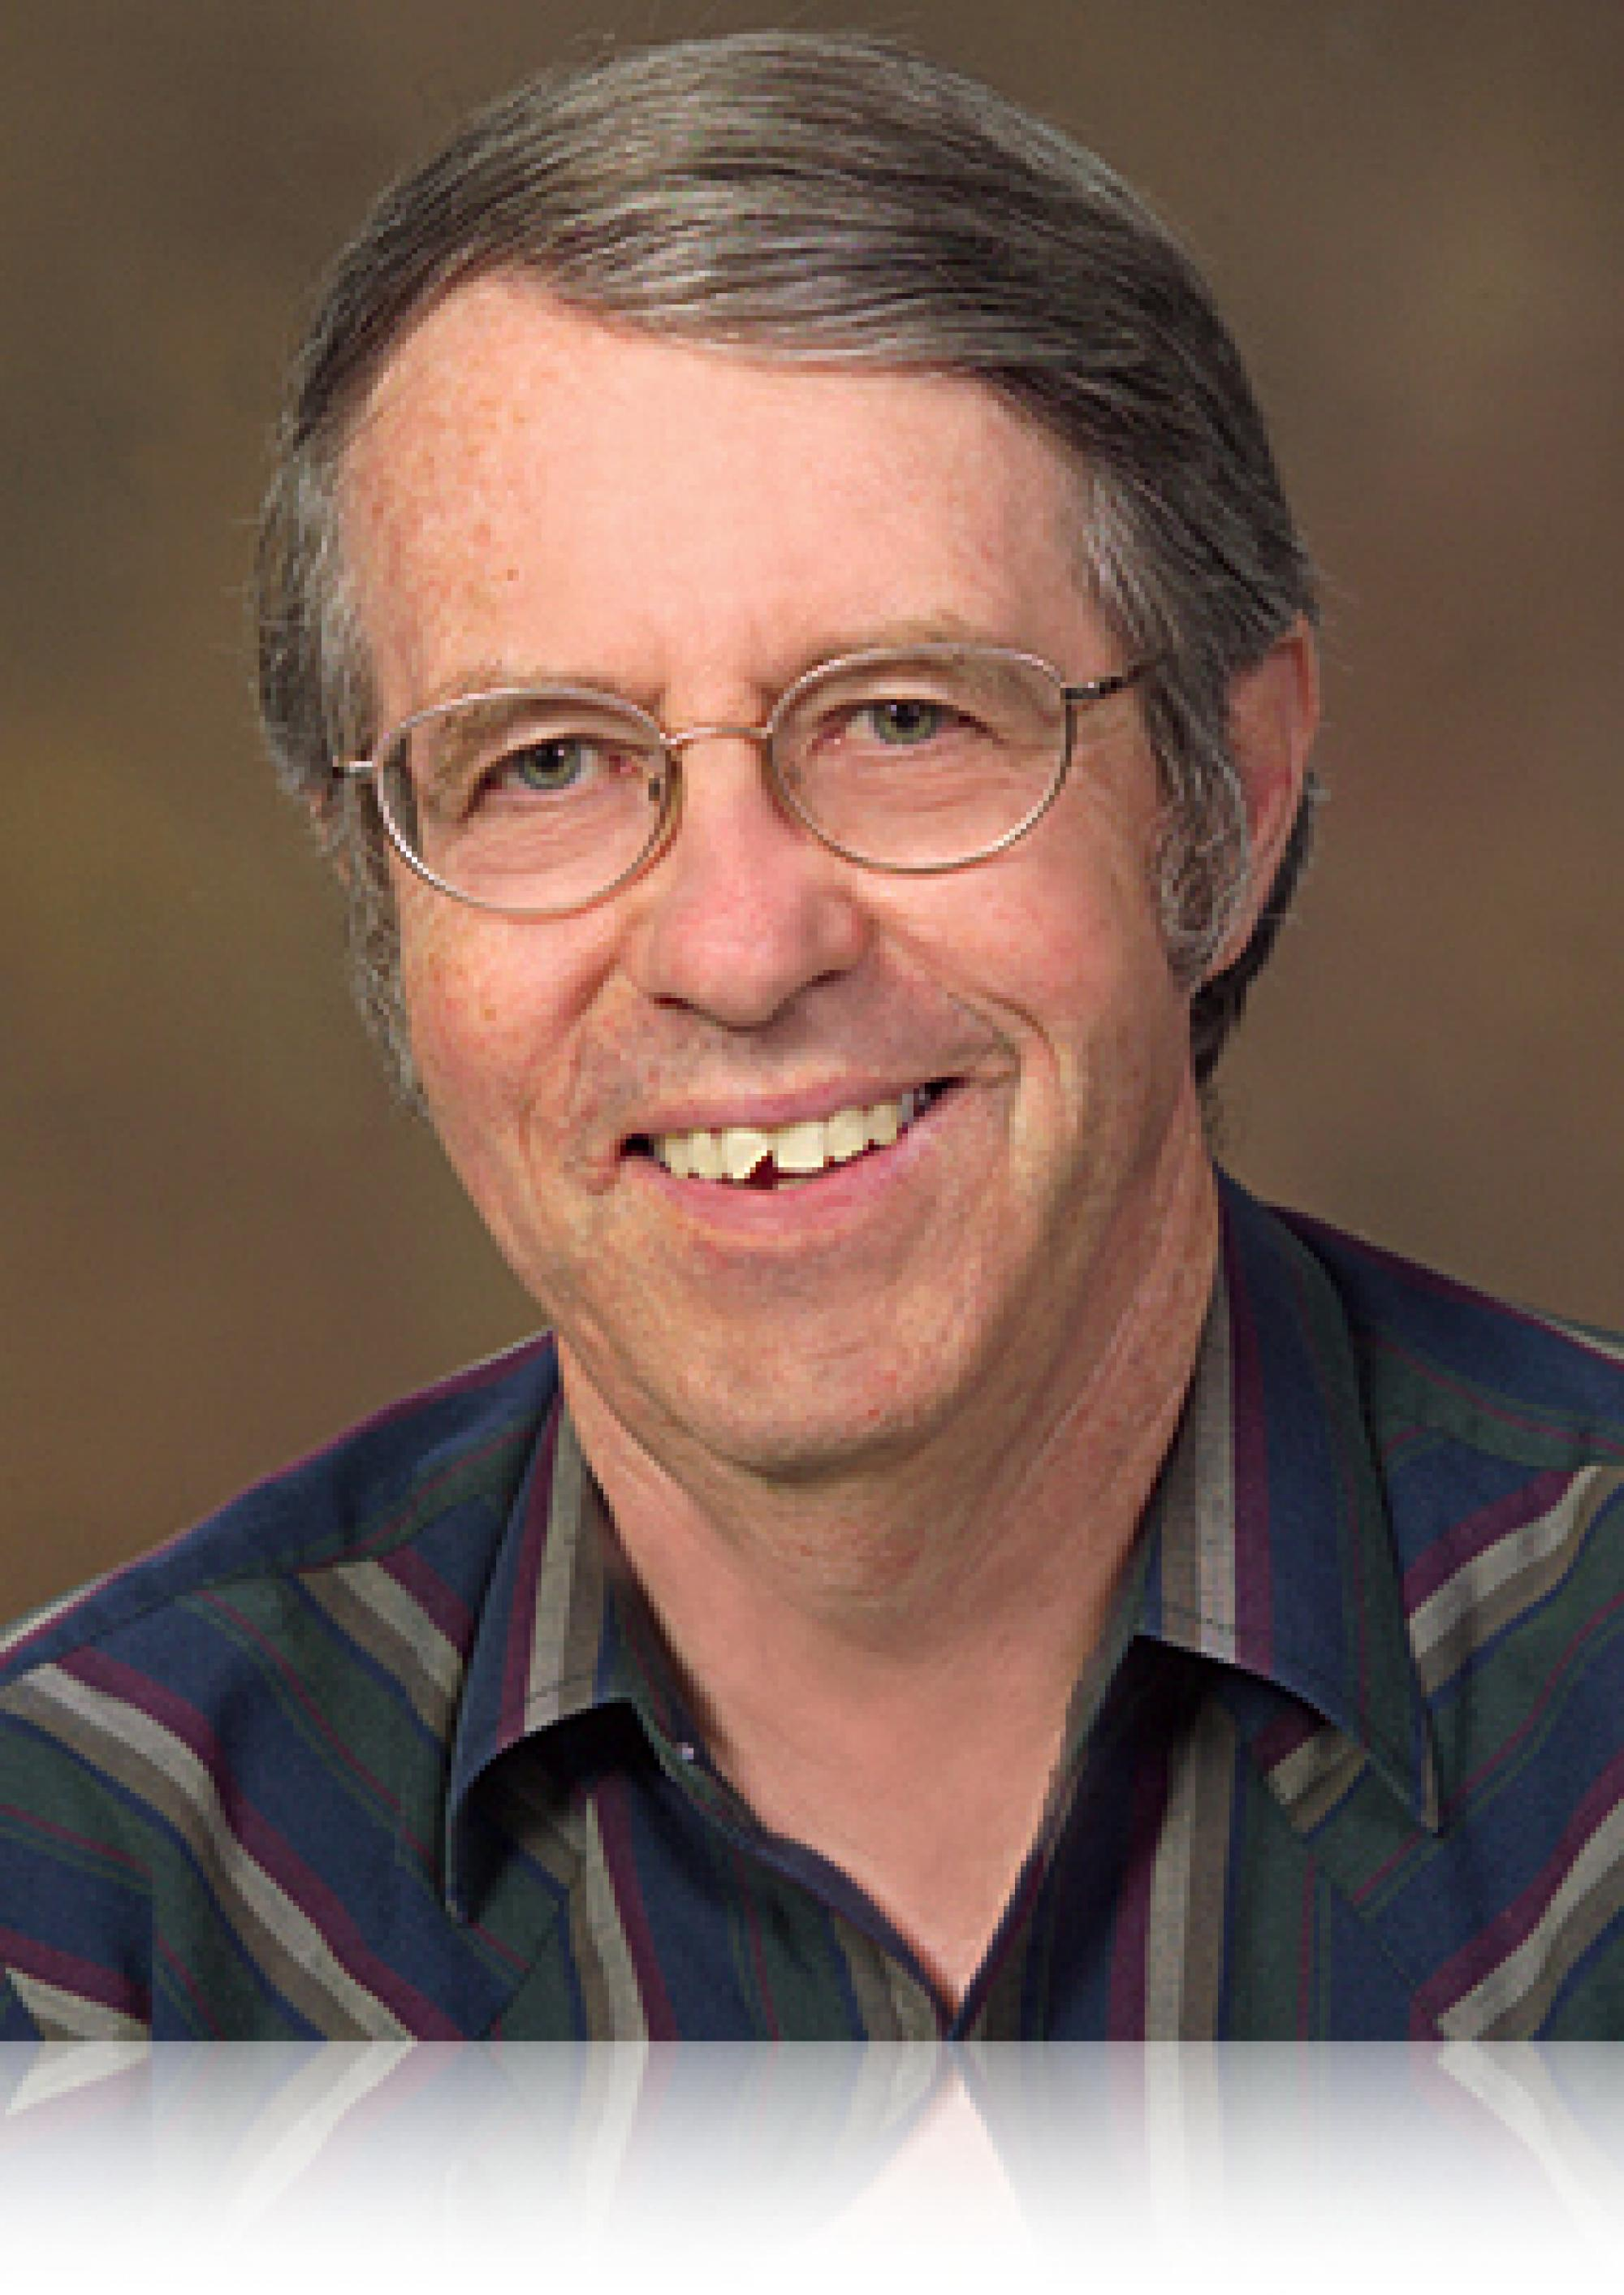 George Rieke is a member of the UA's Steward Observatory and the Lunar and Planetary Laboratory/Department of Planetary Sciences.